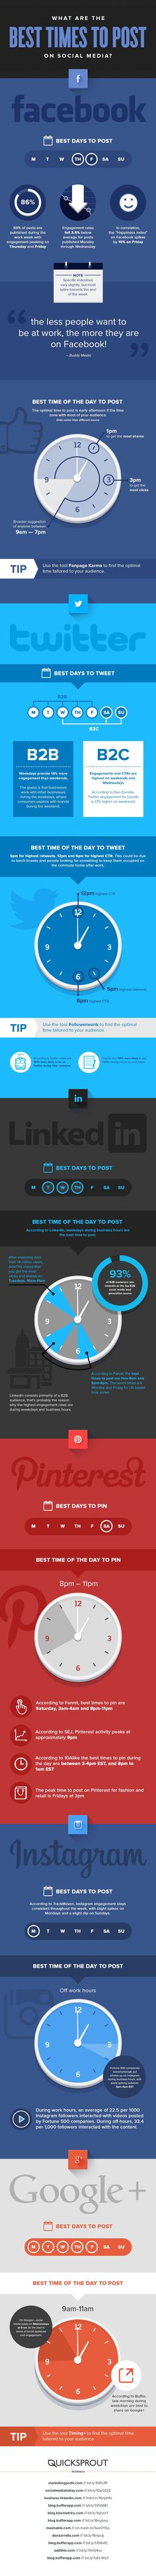 """What Are The Best Times to Post on Social Media""…"